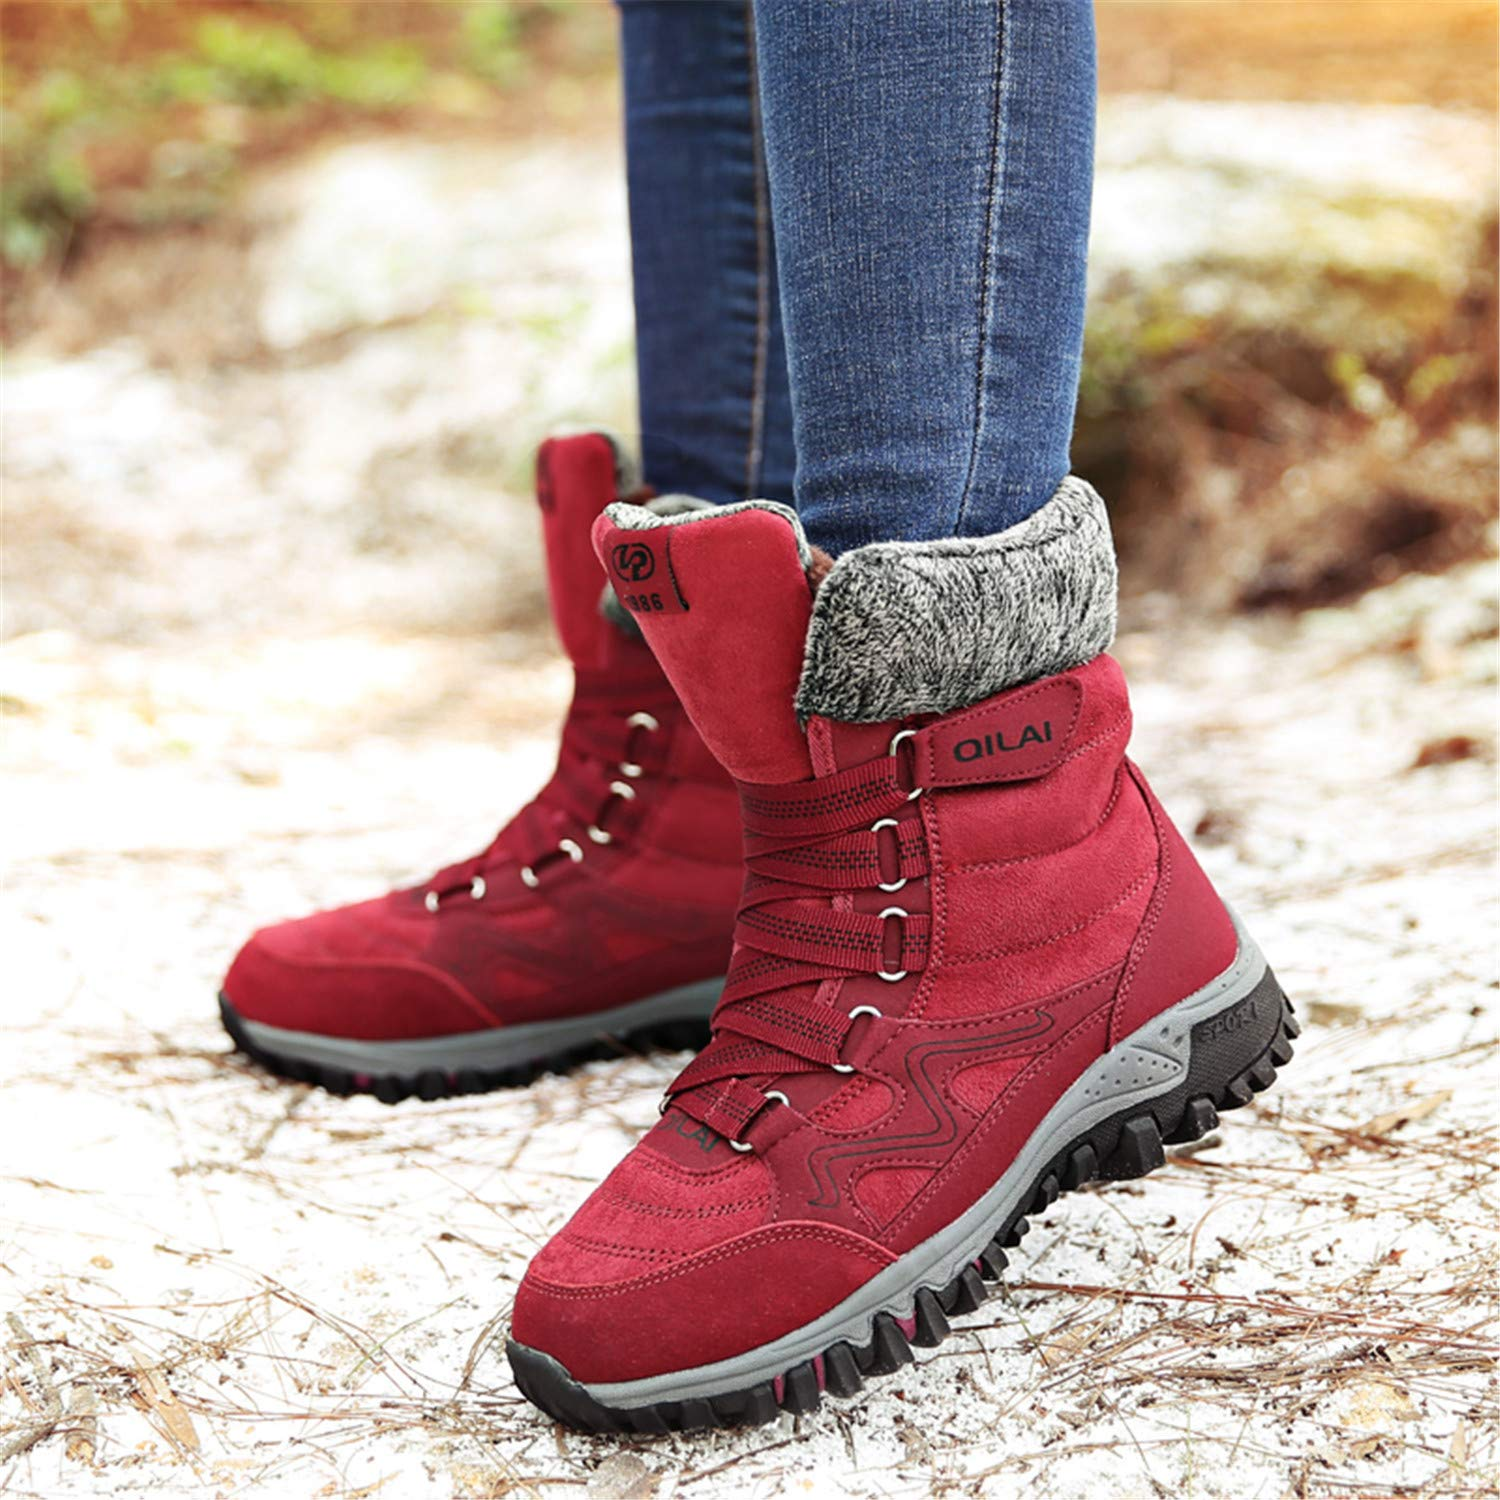 tqgold Womens Waterproof Snow Boots High Top Slip On Ankle Booties Velcro Warm Fur-Lined Winter Boots